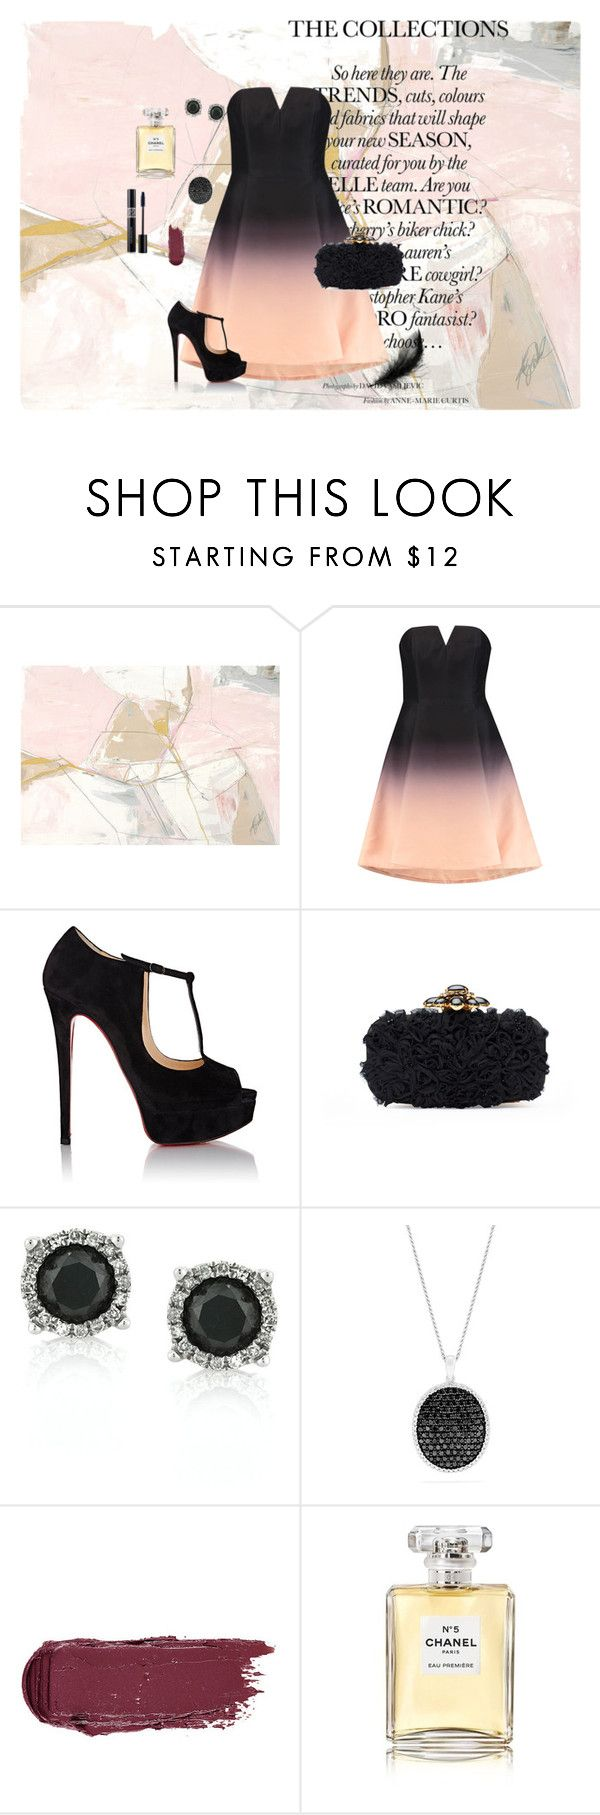 """""""New collection"""" by elsouu ❤ liked on Polyvore featuring Halston Heritage, Christian Louboutin, Oscar de la Renta, Mark Broumand, Effy Jewelry, Chanel and Christian Dior"""